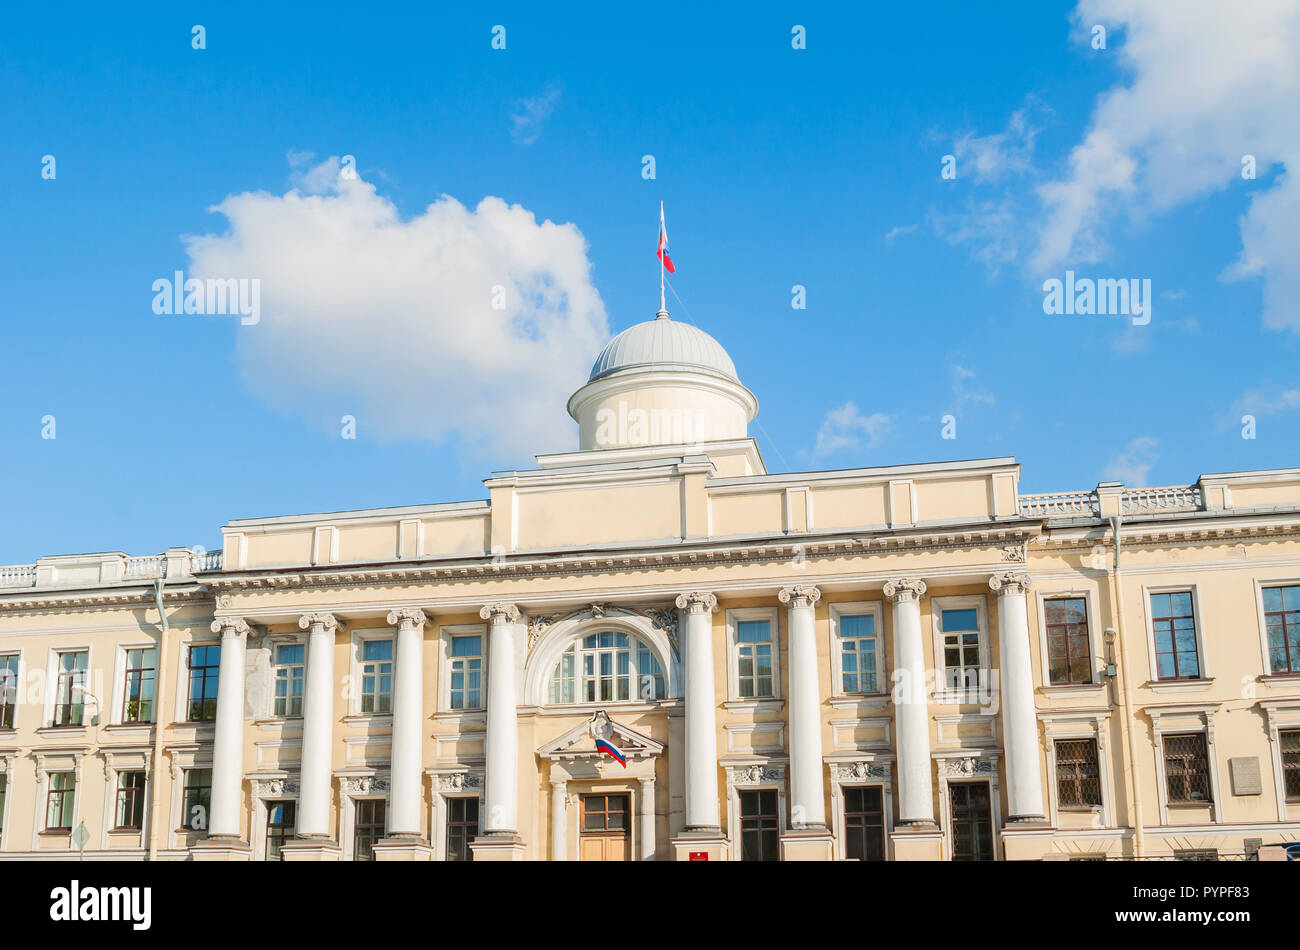 Leningrad Regional Court building on the Fontanka River in Saint Petersburg, Russia - closeup facade view with Russian flag on the roof flagpole - Stock Image